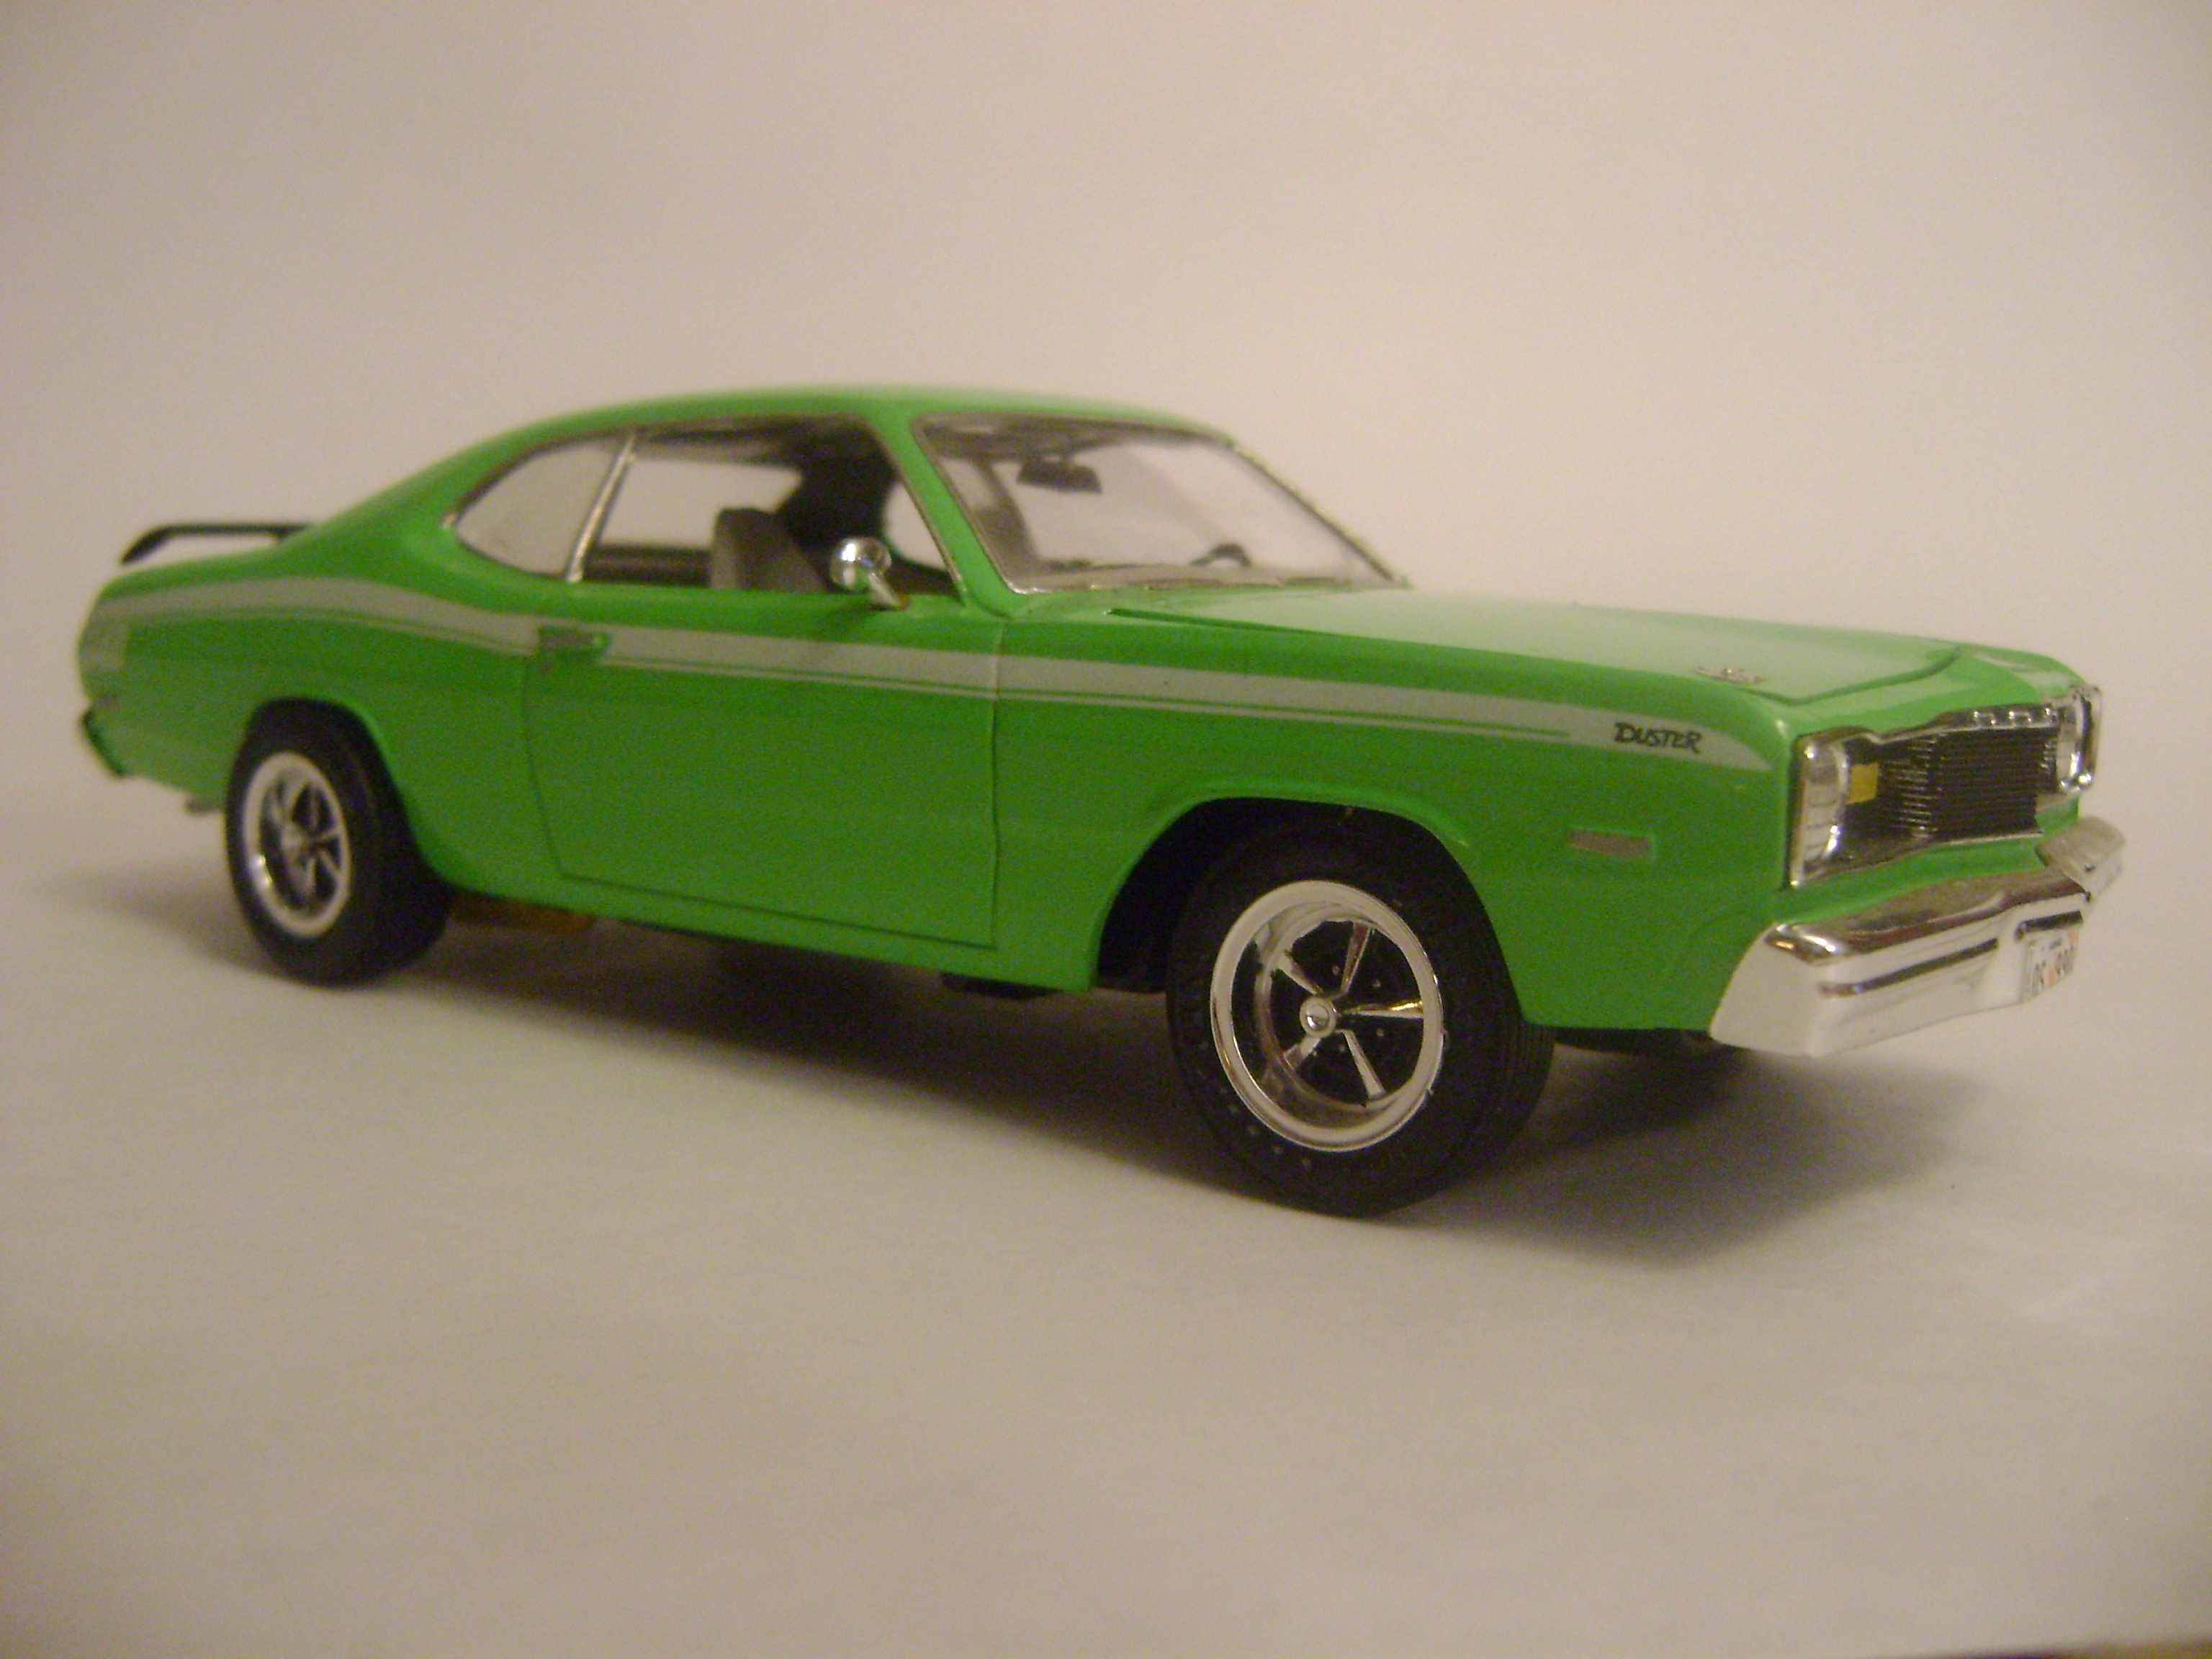 '75 Duster